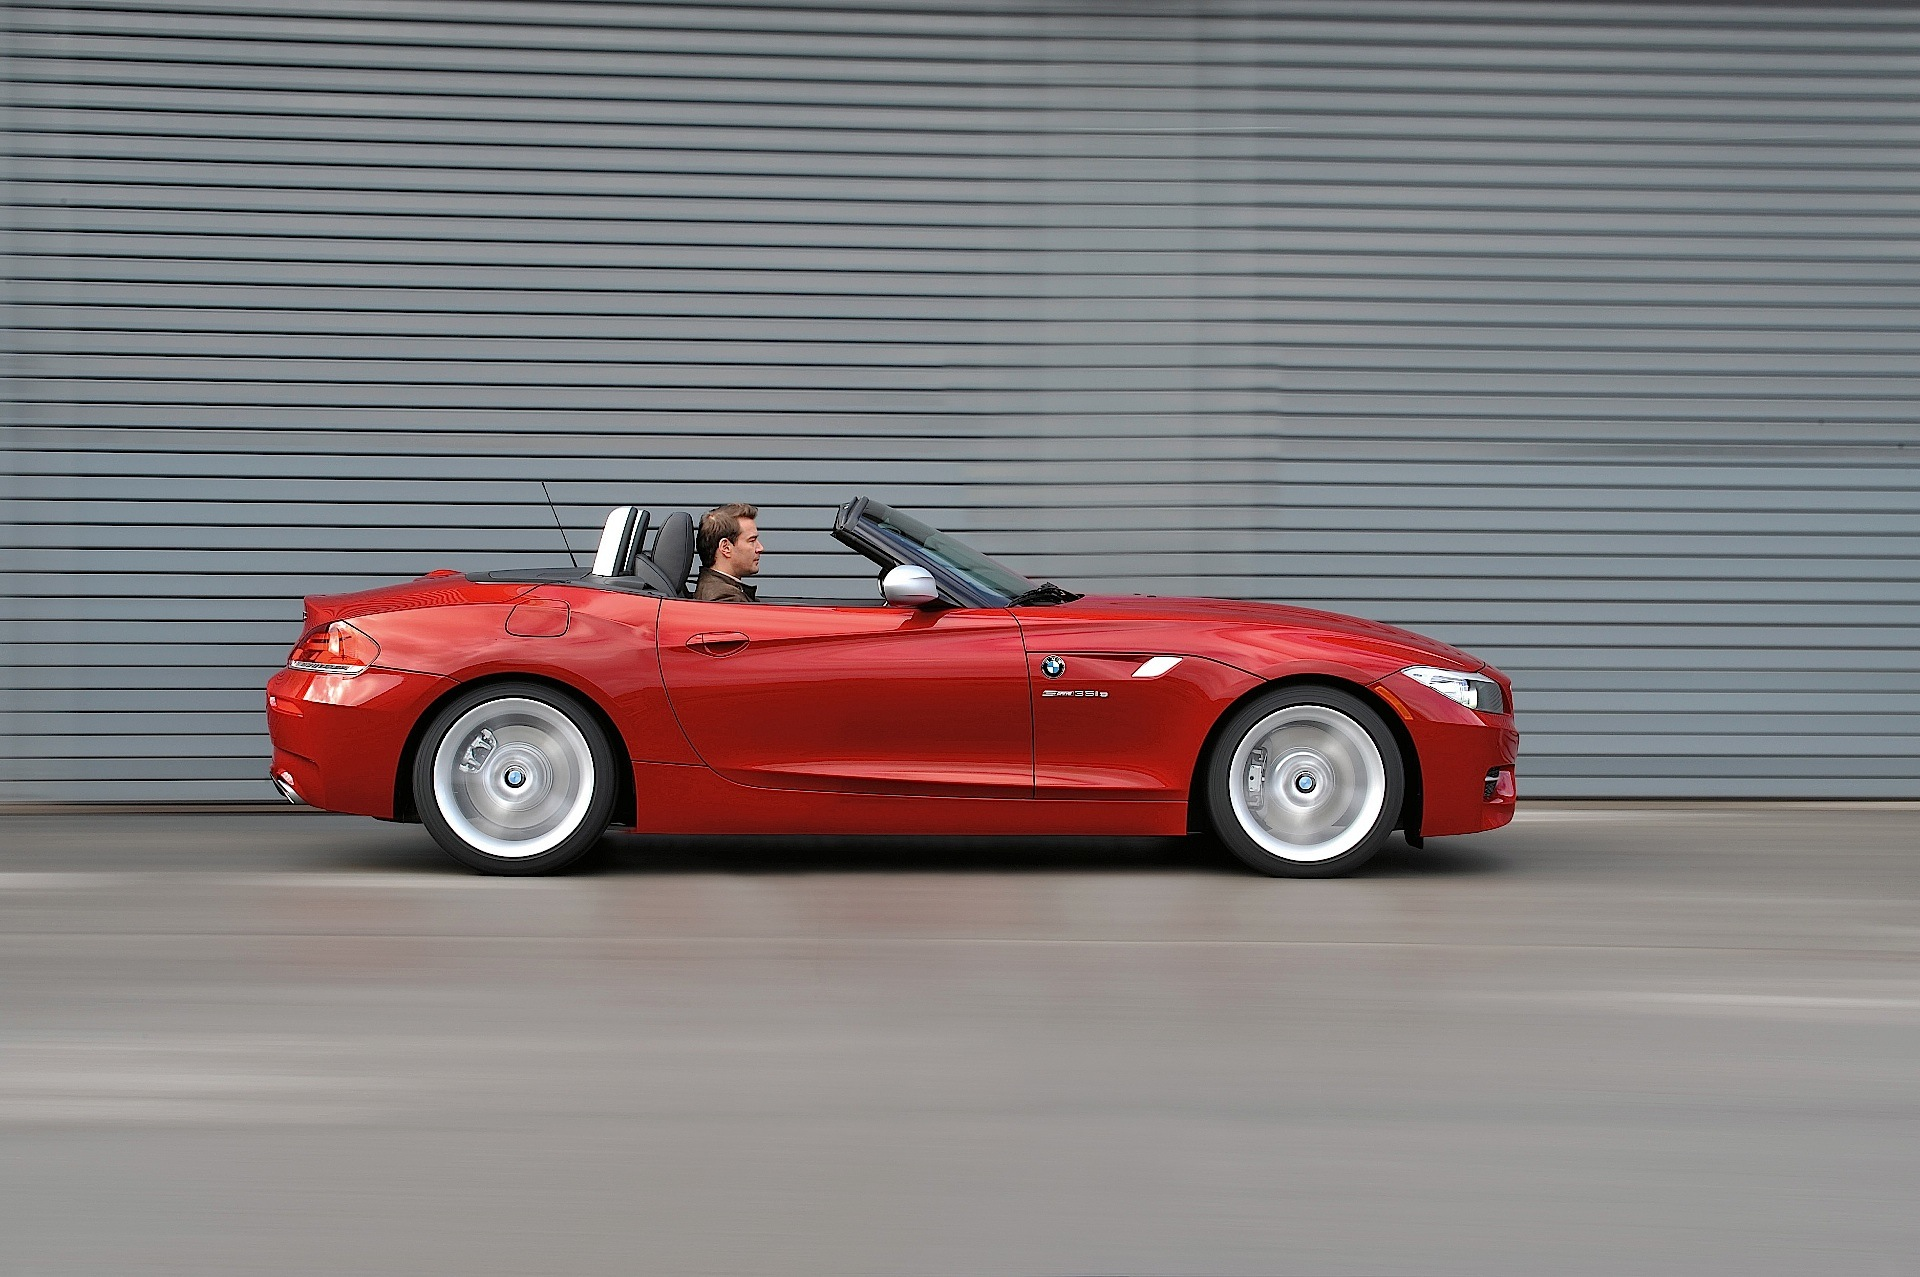 Bmw Z4 35is Specs Bmw Zis Laptimes Specs Performance Data